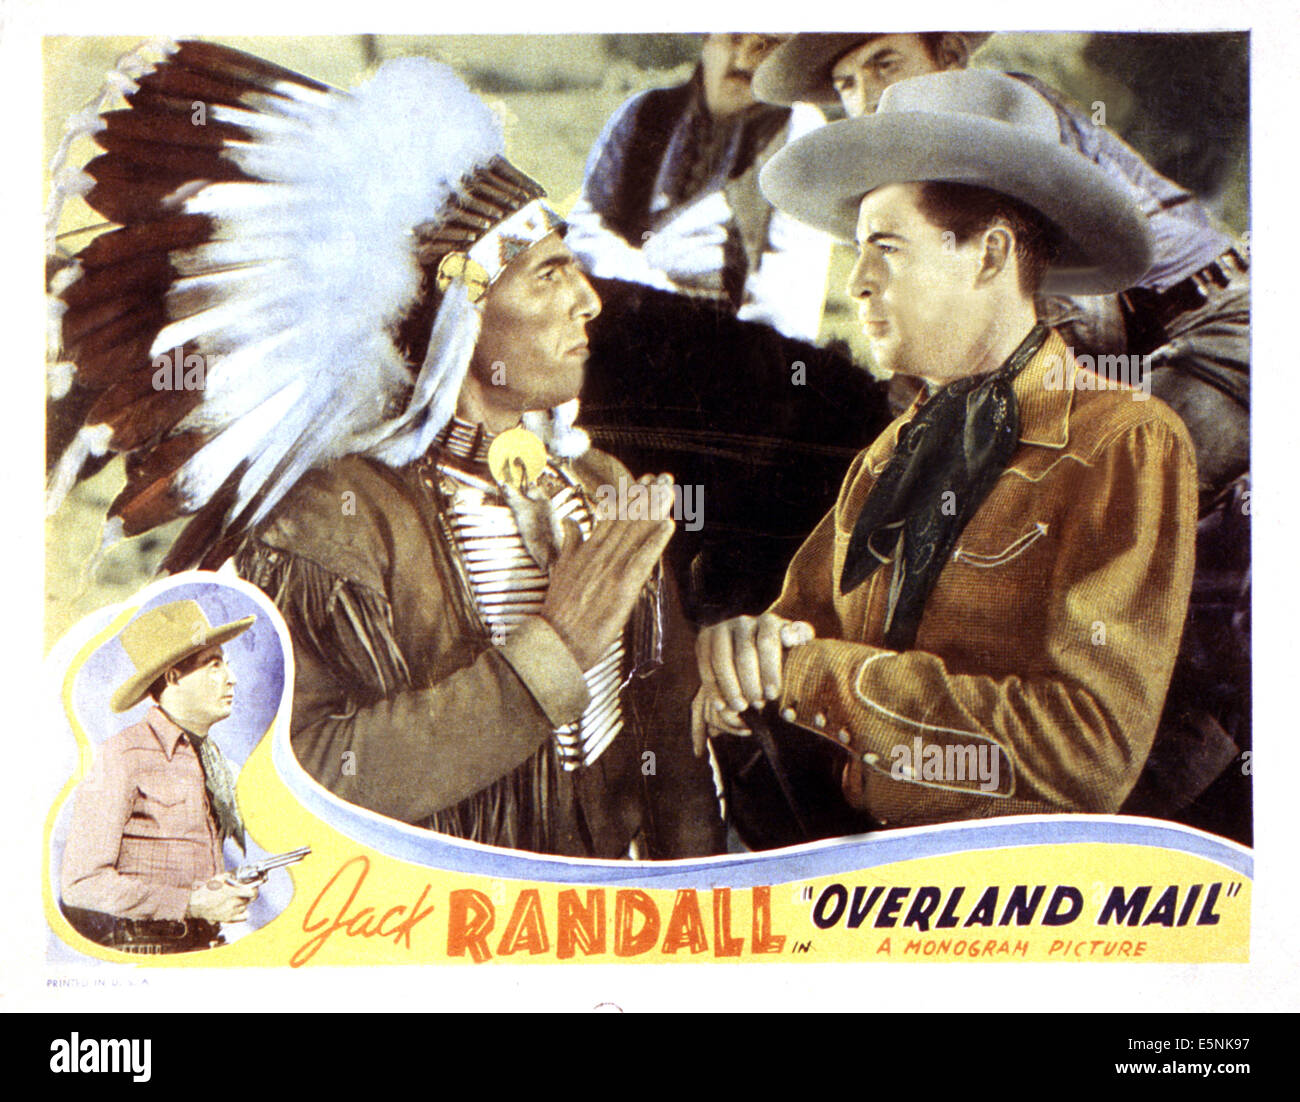 OVERLAND MAIL, from from left: Iron Eyes Cody, Jack Randall, 1939 - Stock Image